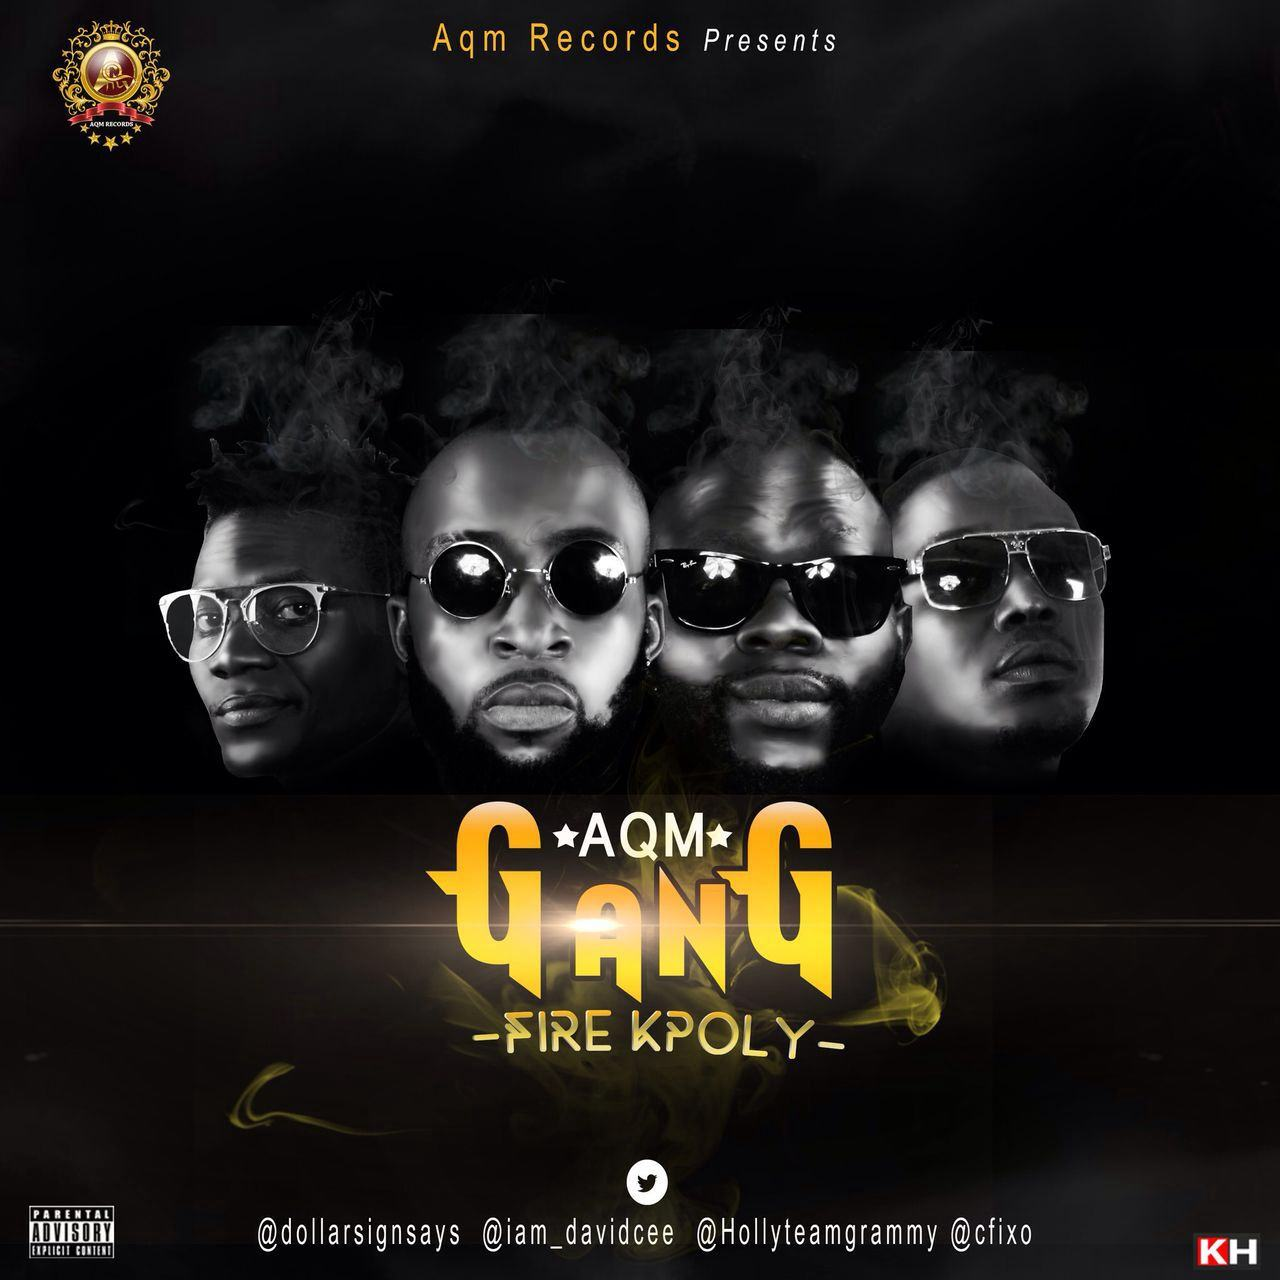 AQM GANG - FiRe Kpoly [AuDio]